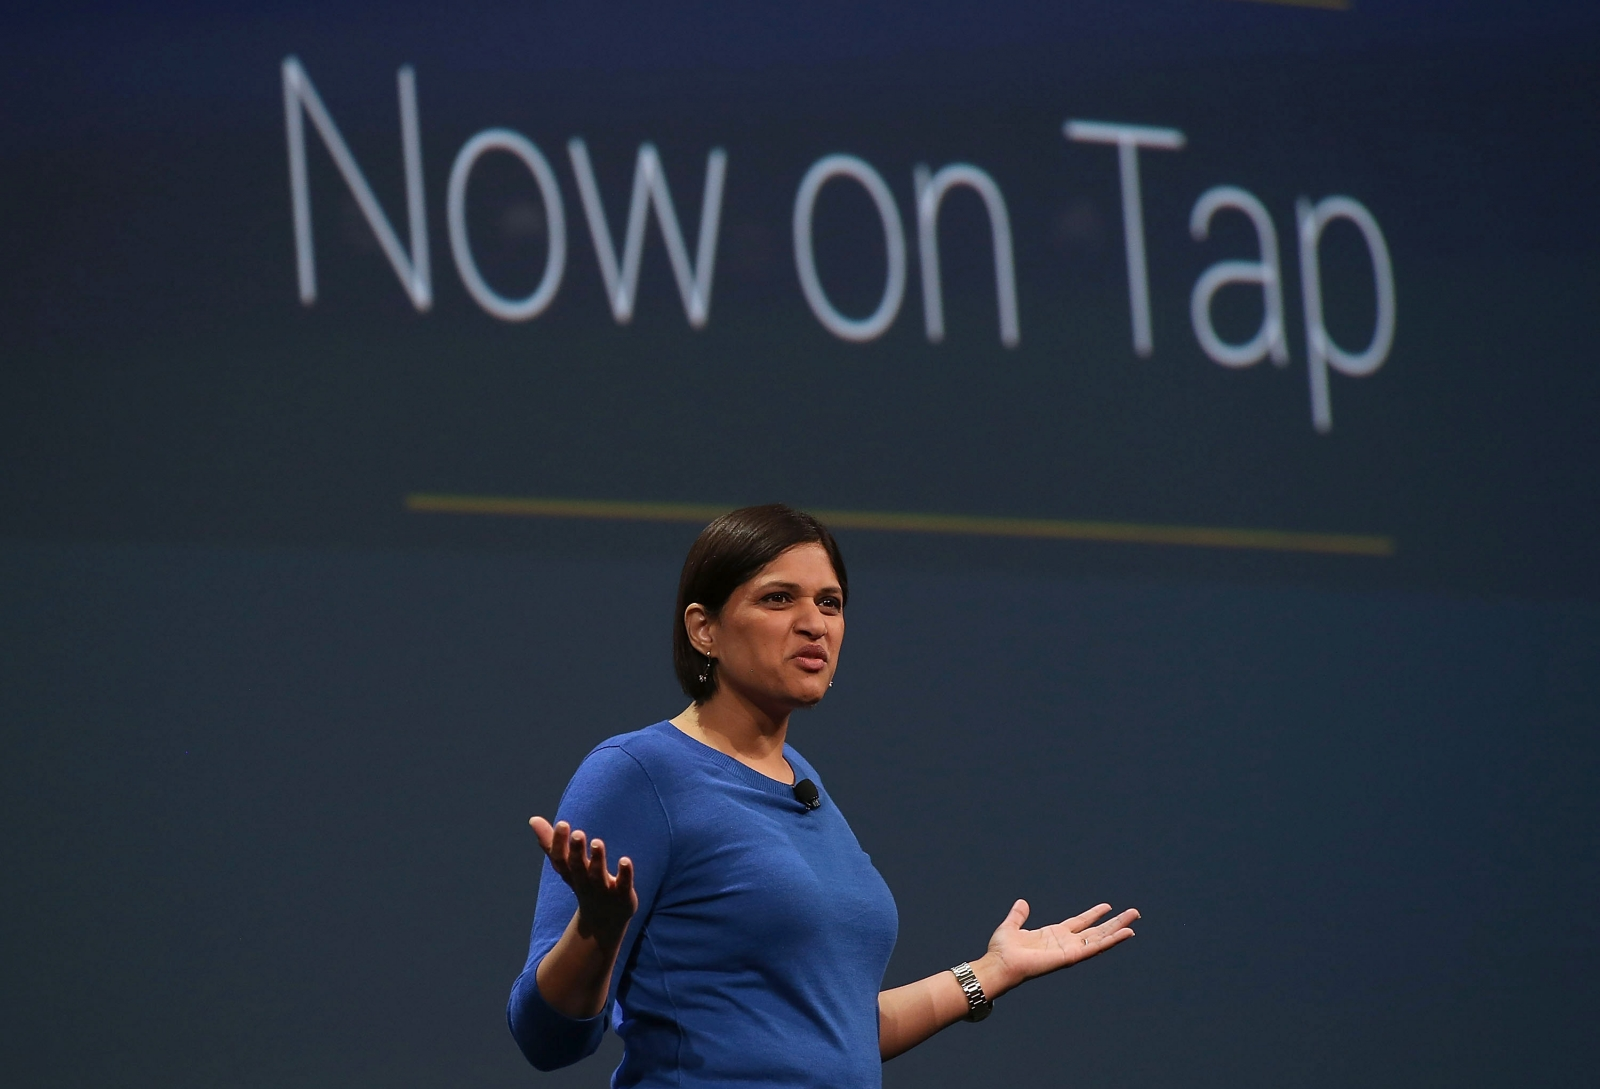 How to get Google Now on Tap